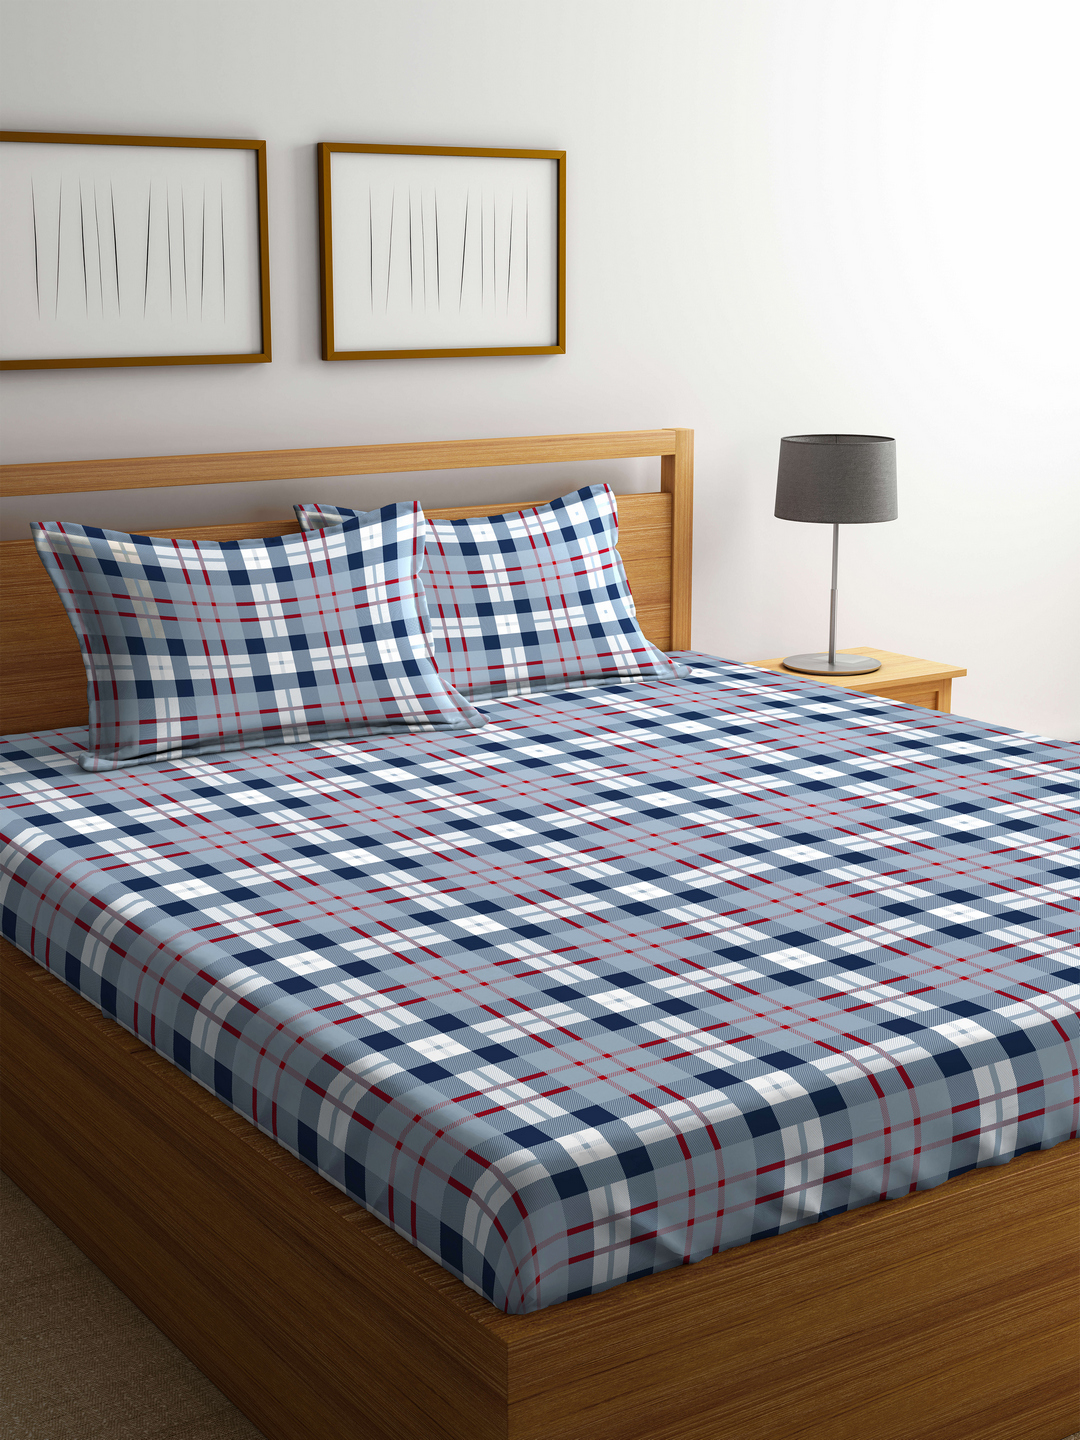 Portico Marvella Flannel Bedsheet Cotton Double Bed Sheets in Multicolour Colour by Portico